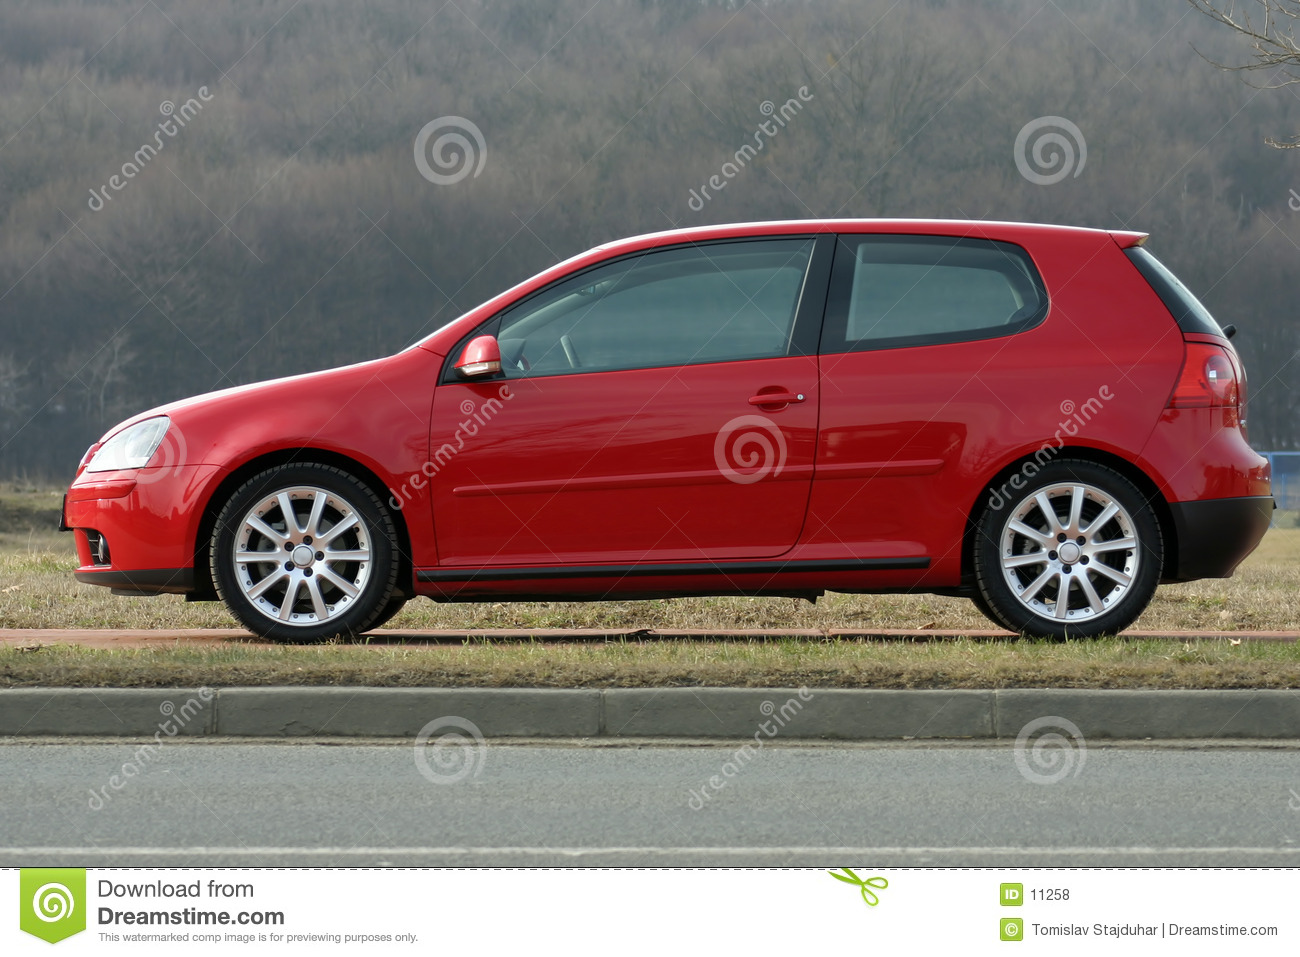 A VW golf o tdi de V 2.0